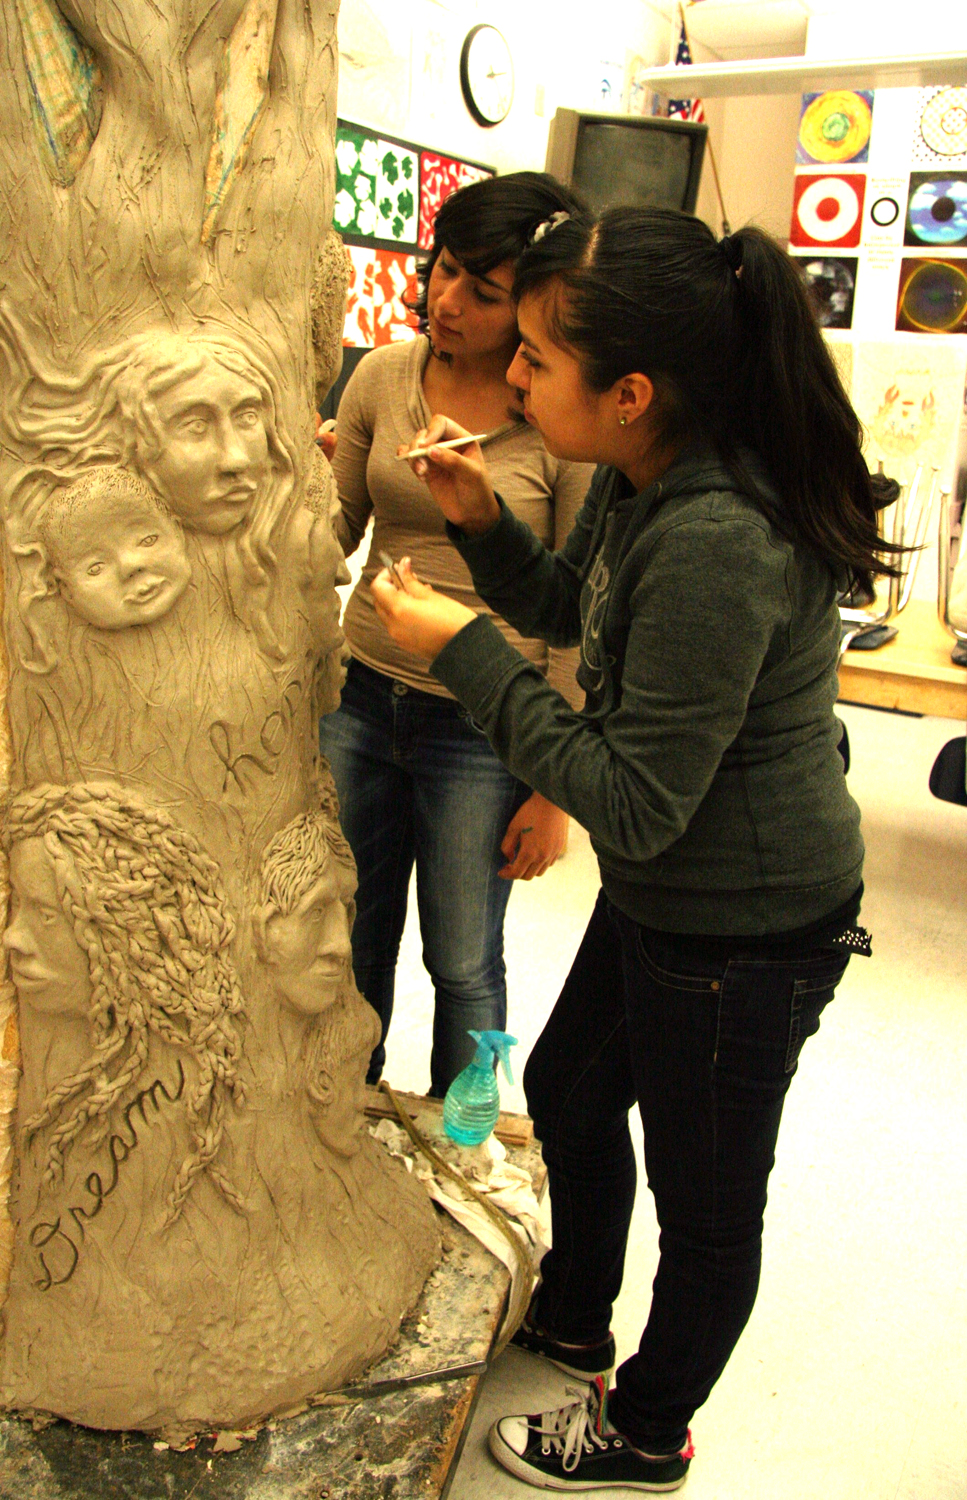 Tree of life process by North Salem High School students